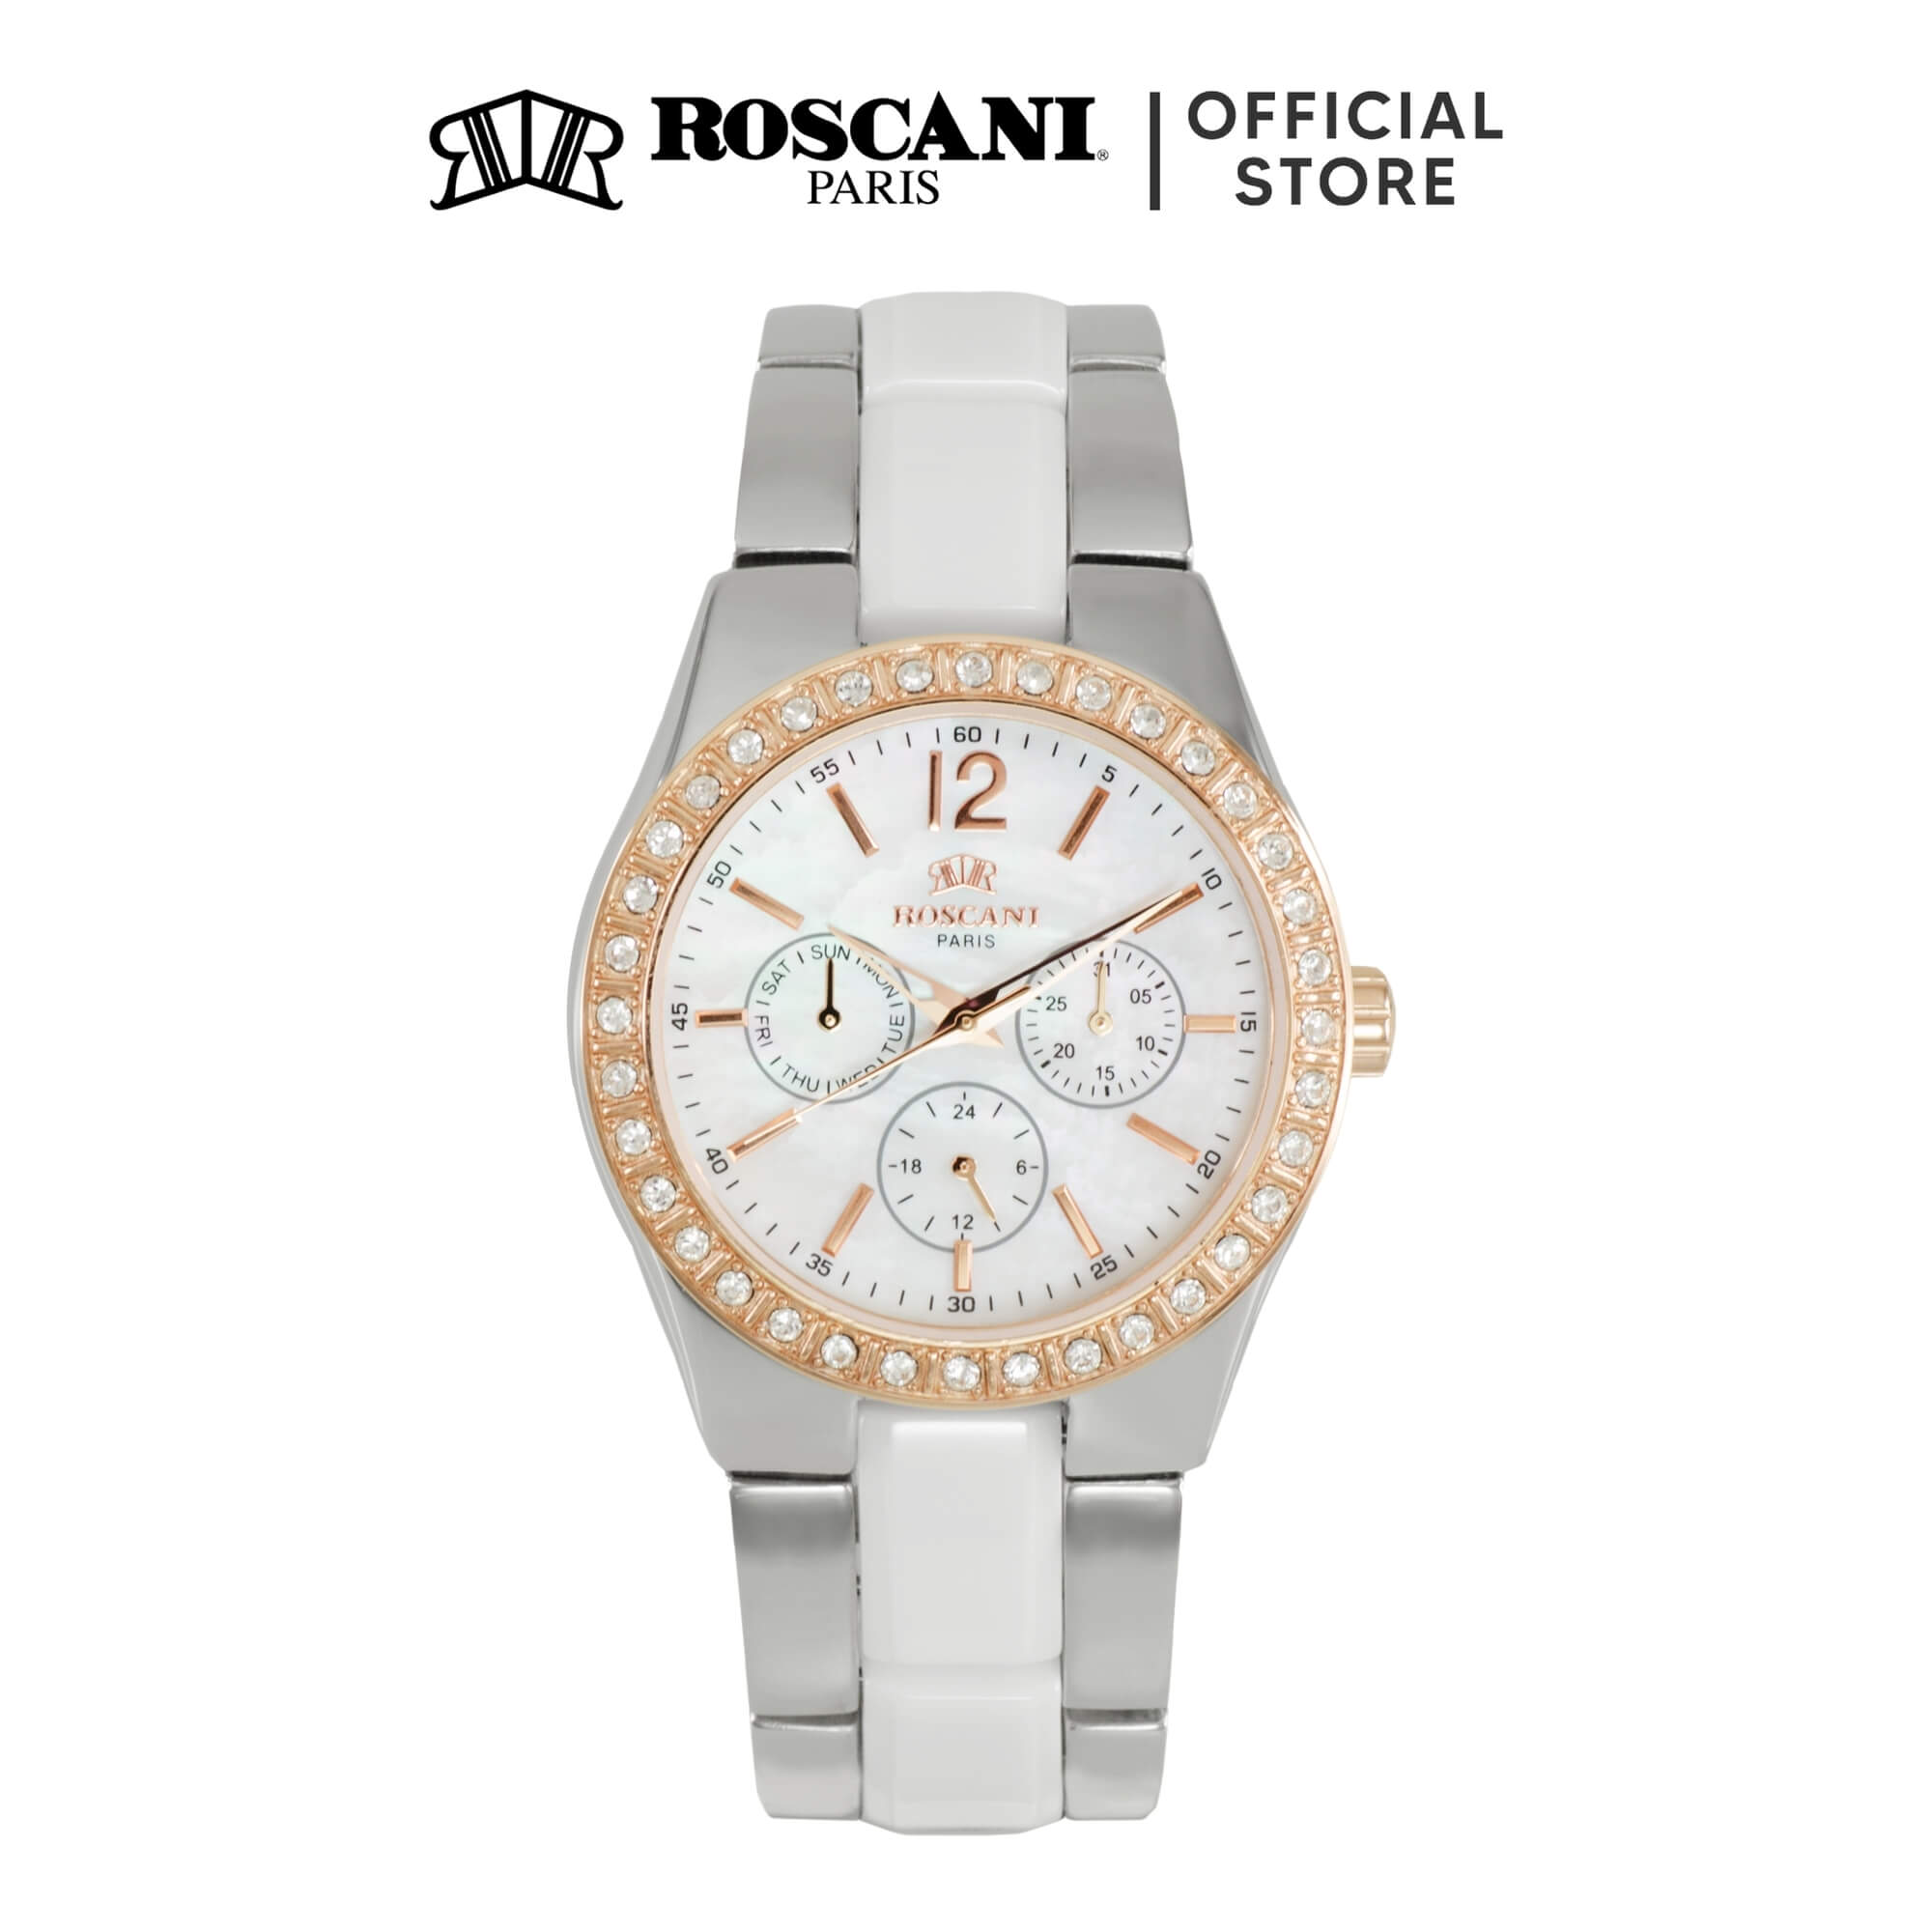 Roscani Evelynn 919 (Multifunction + WR 5ATM) Bracelet Women Watch